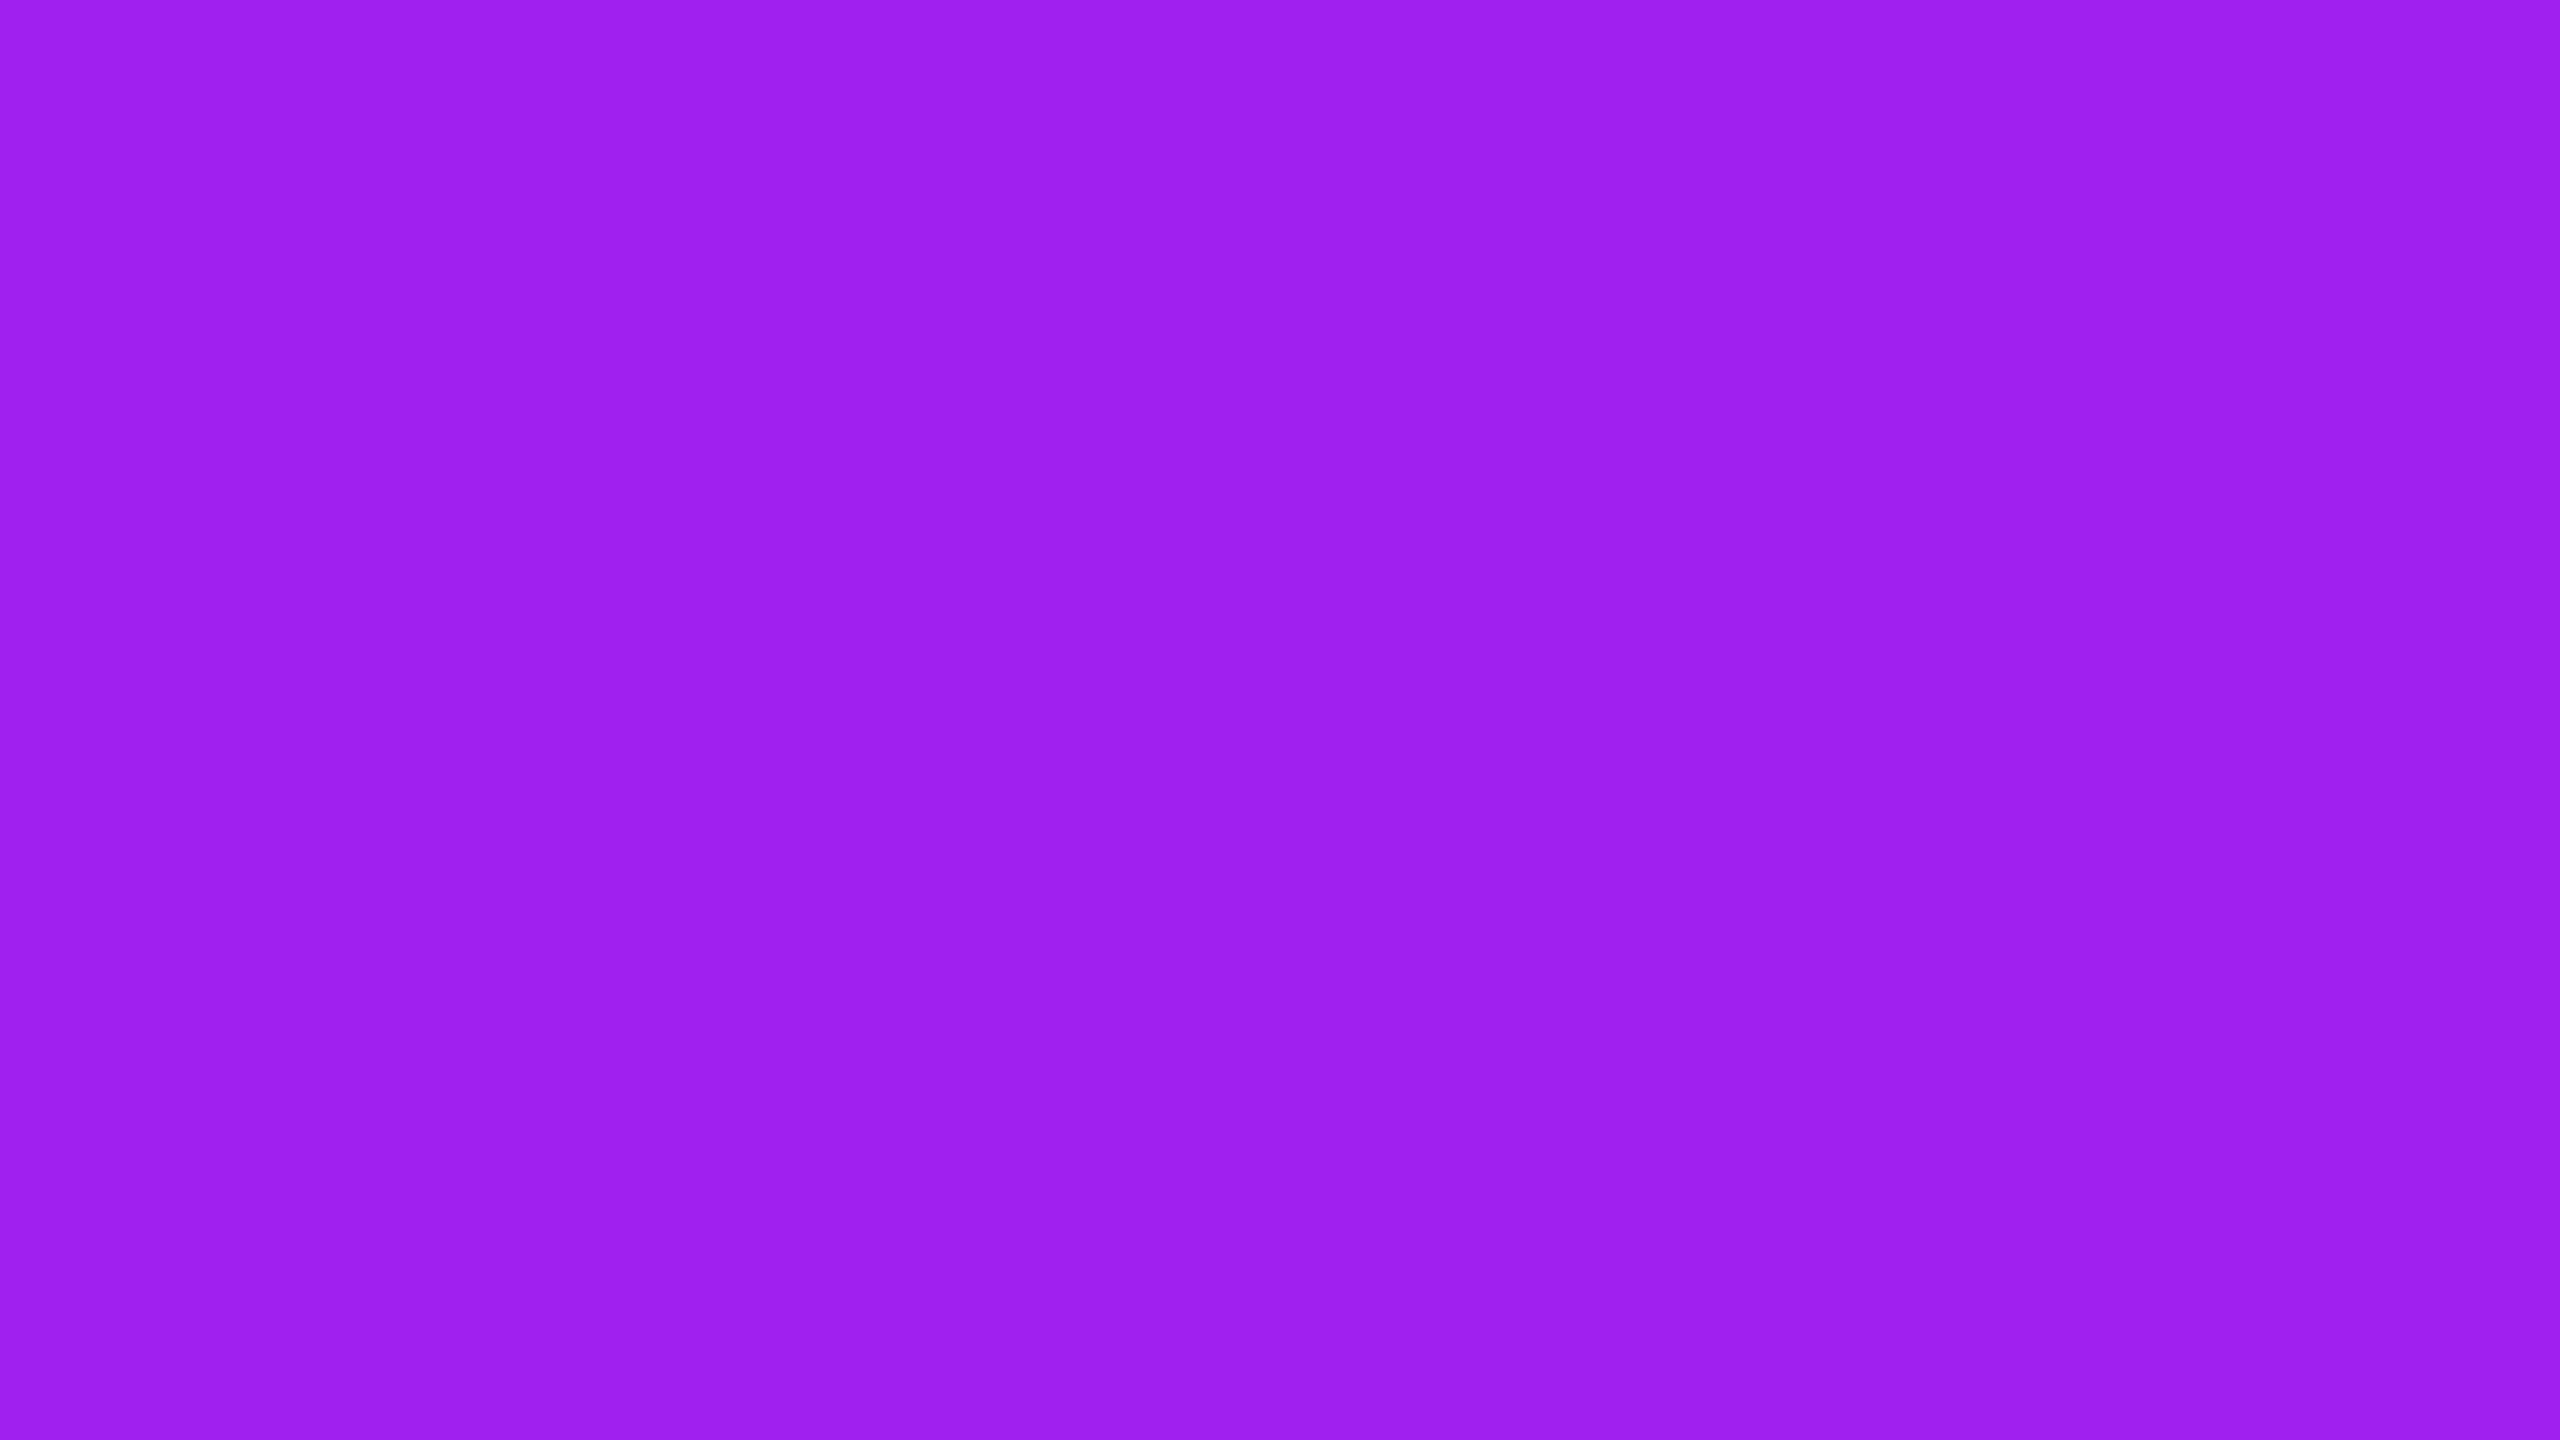 Privacy Policy >> 2560x1440 Purple X11 Gui Solid Color Background